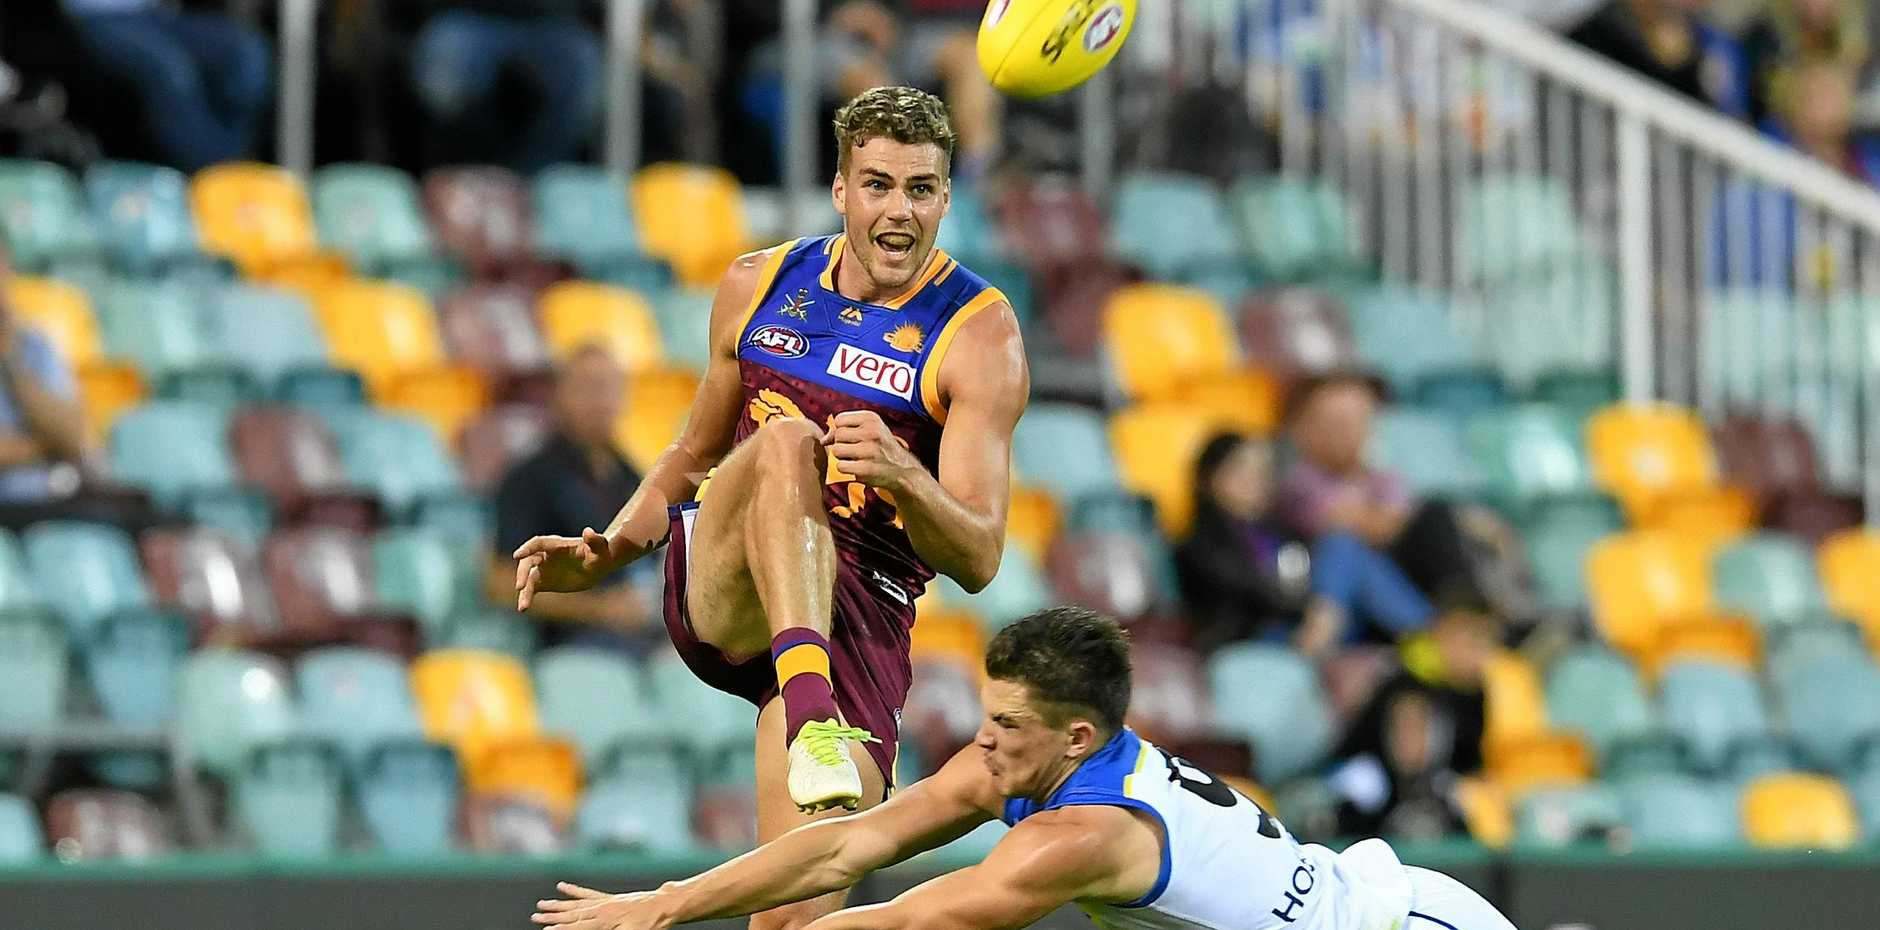 The Lions' Tom Cutler gets his kick away despite the efforts of the Suns' Ben Ainsworth during their teams' round five clash at the Gabba last Sunday. Picture: Dan Peled/AAP